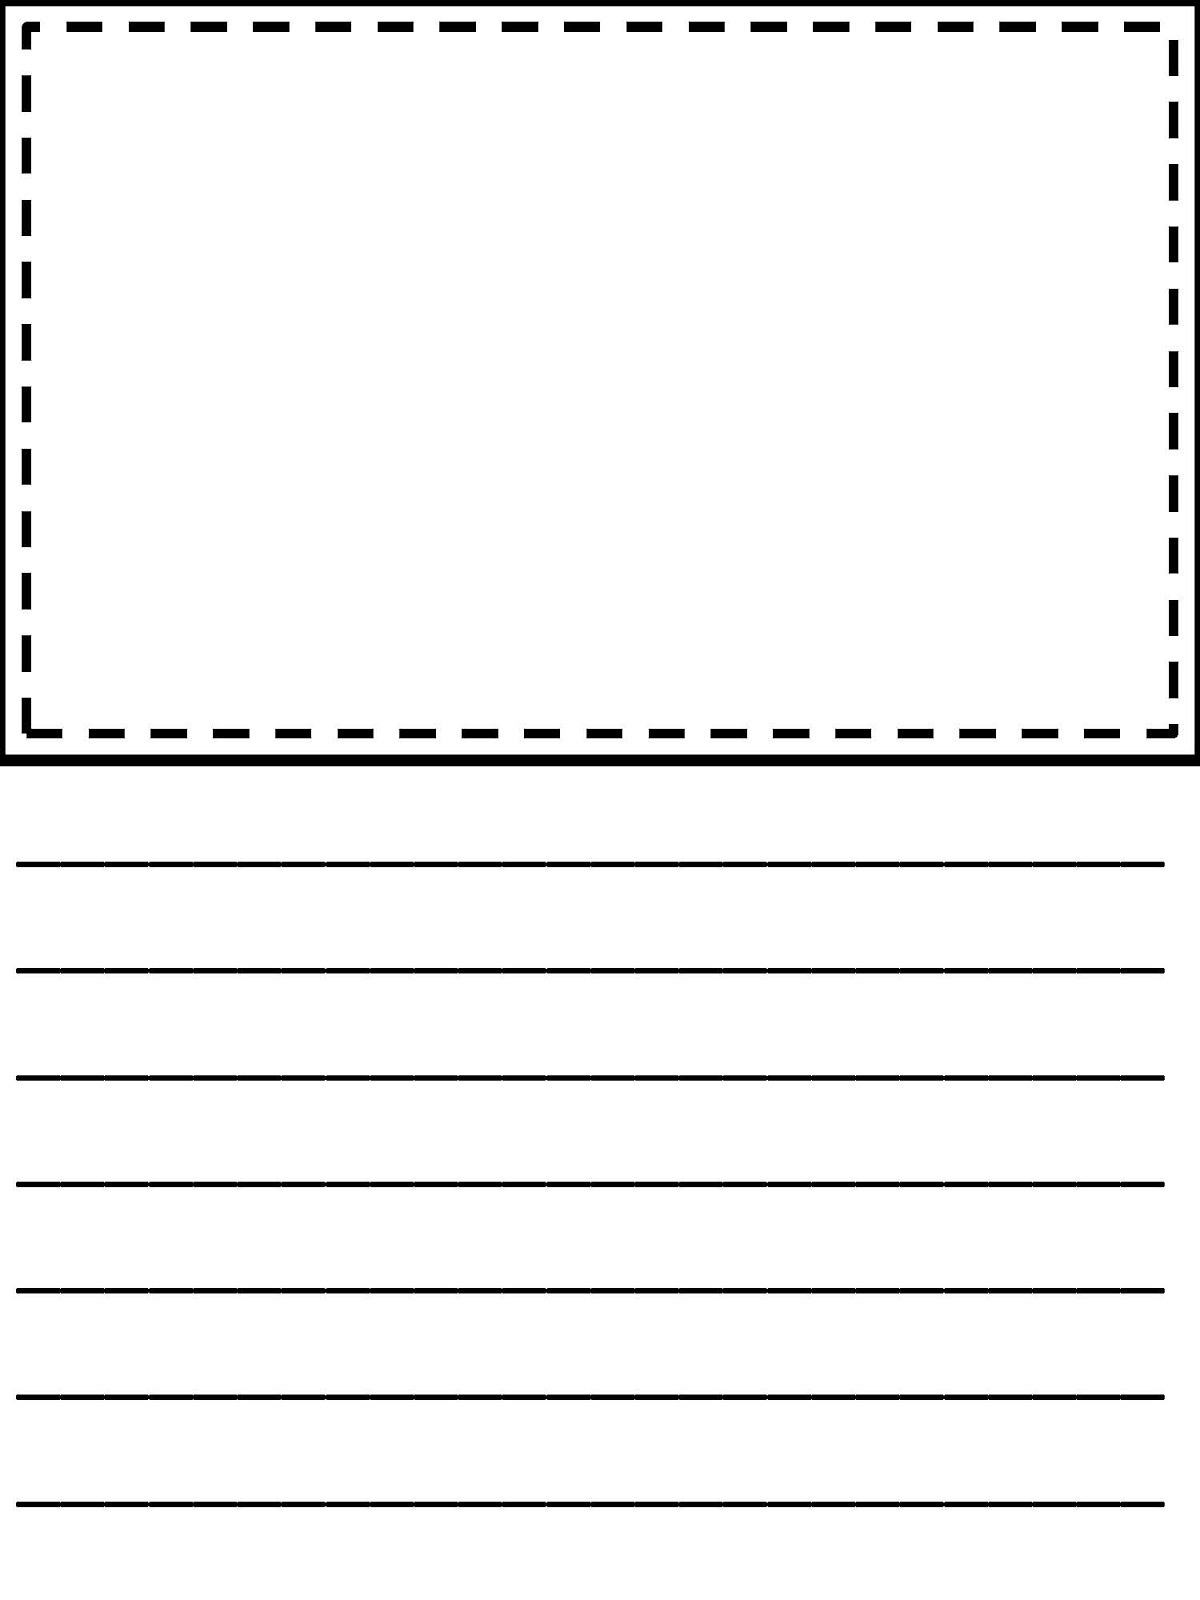 Writing Paper With Room For Drawings Page Abcteach K Reader  Printable Lined Paper